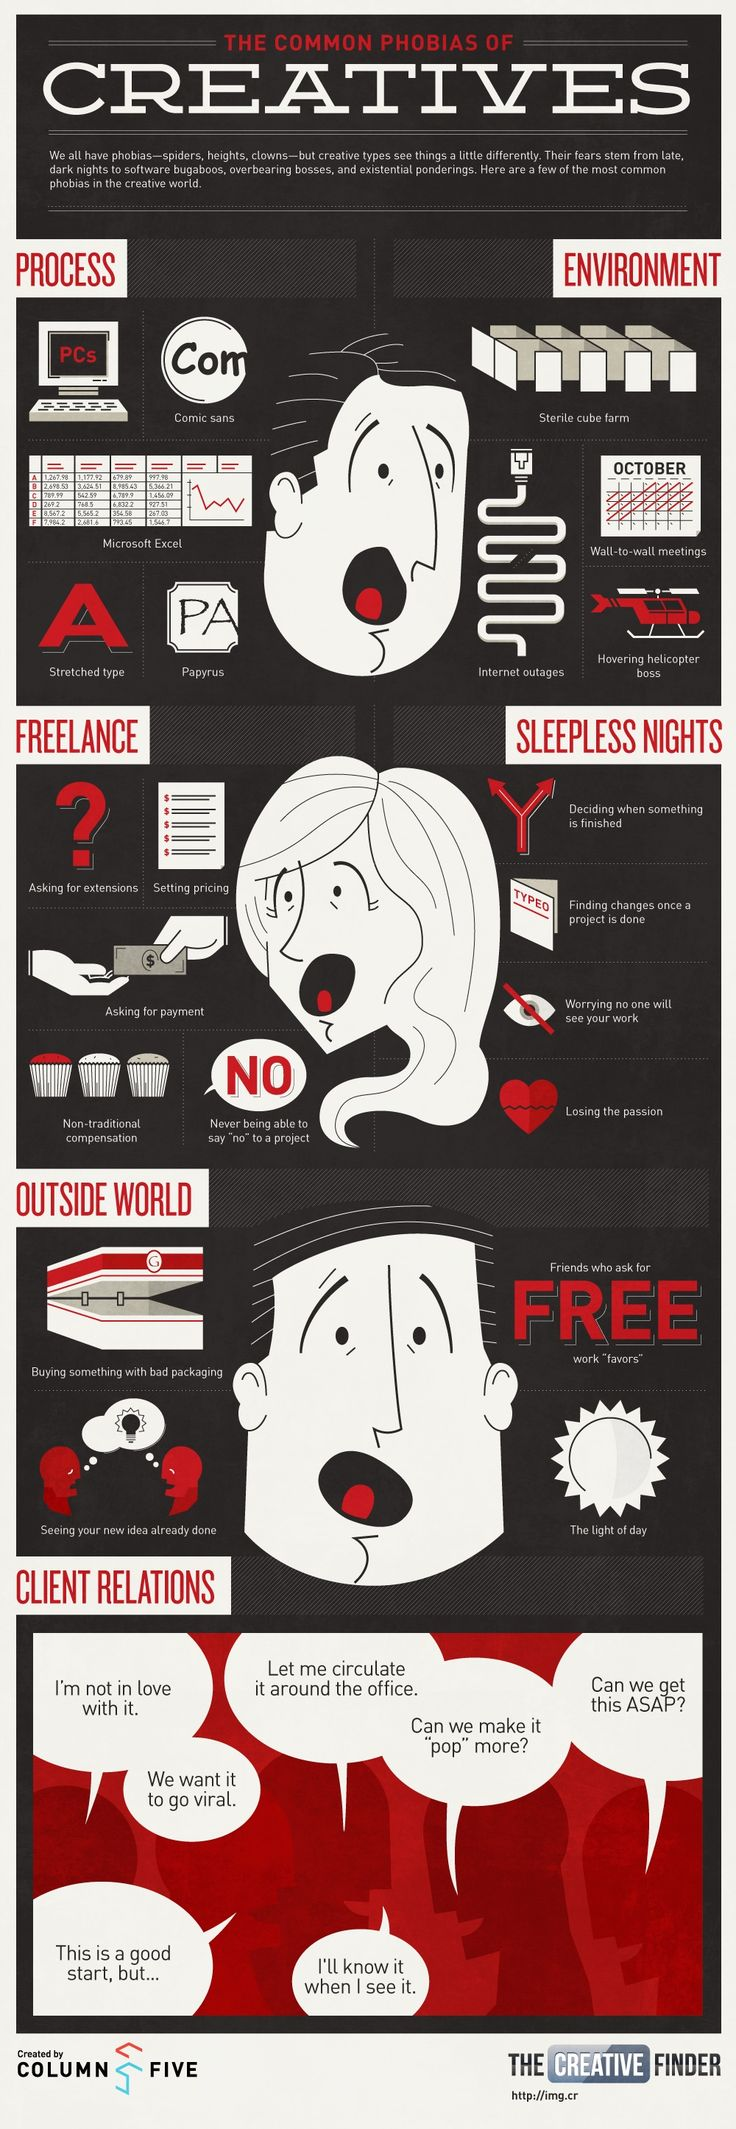 Infographic: What Creatives Fear (oy with the helicopter boss in my cube farm!)